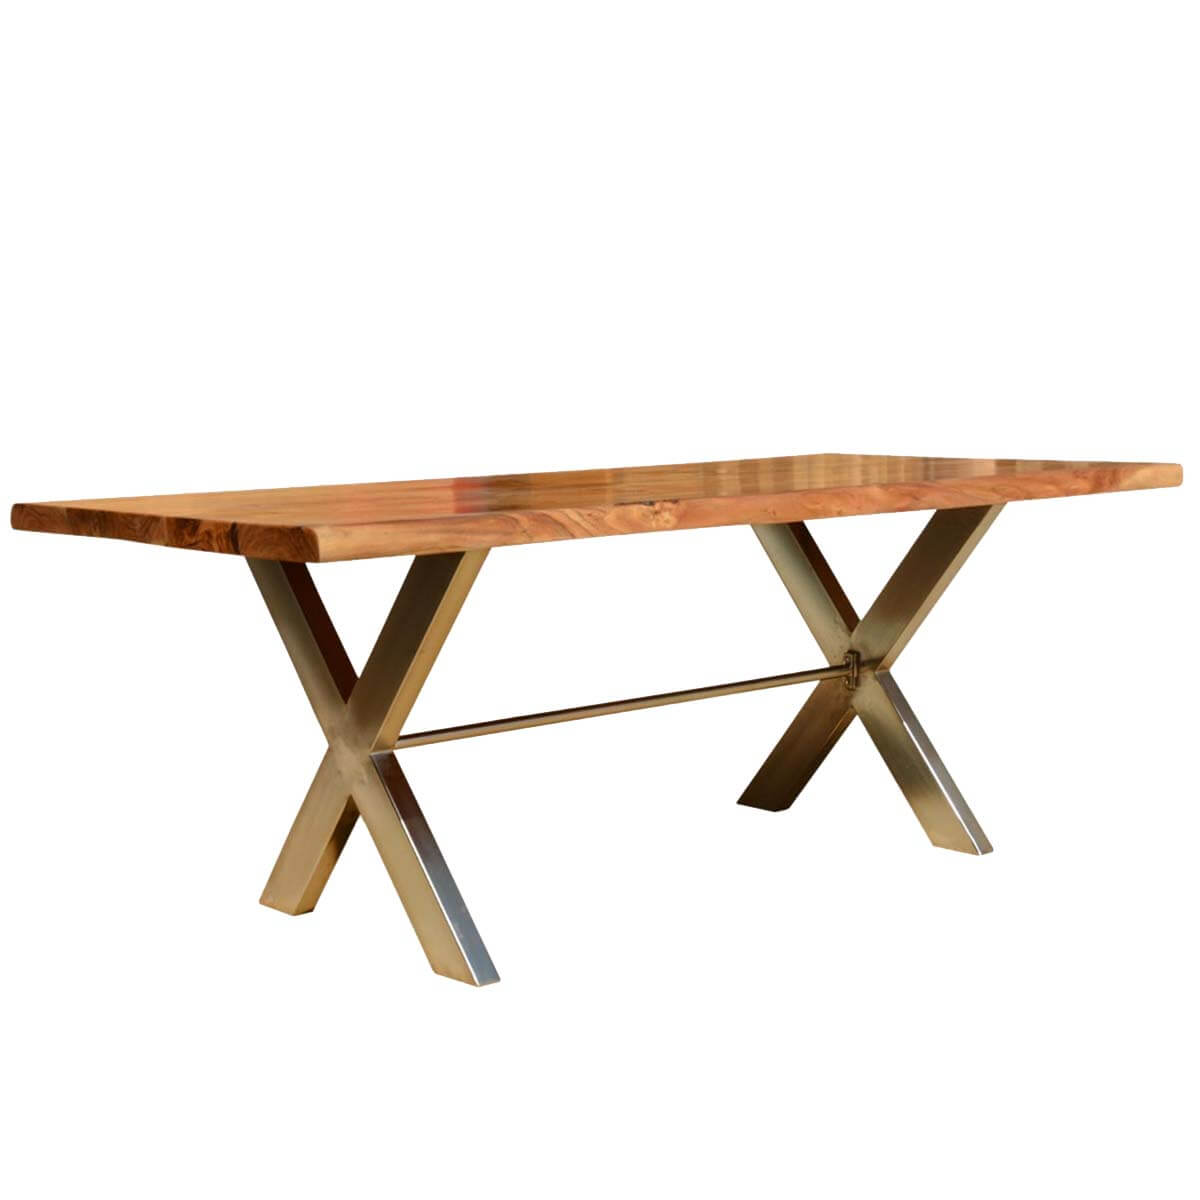 Industrial Cross Legs Solid Wood Live Edge Dining Table : 56072 from sierralivingconcepts.com size 1200 x 1200 jpeg 62kB